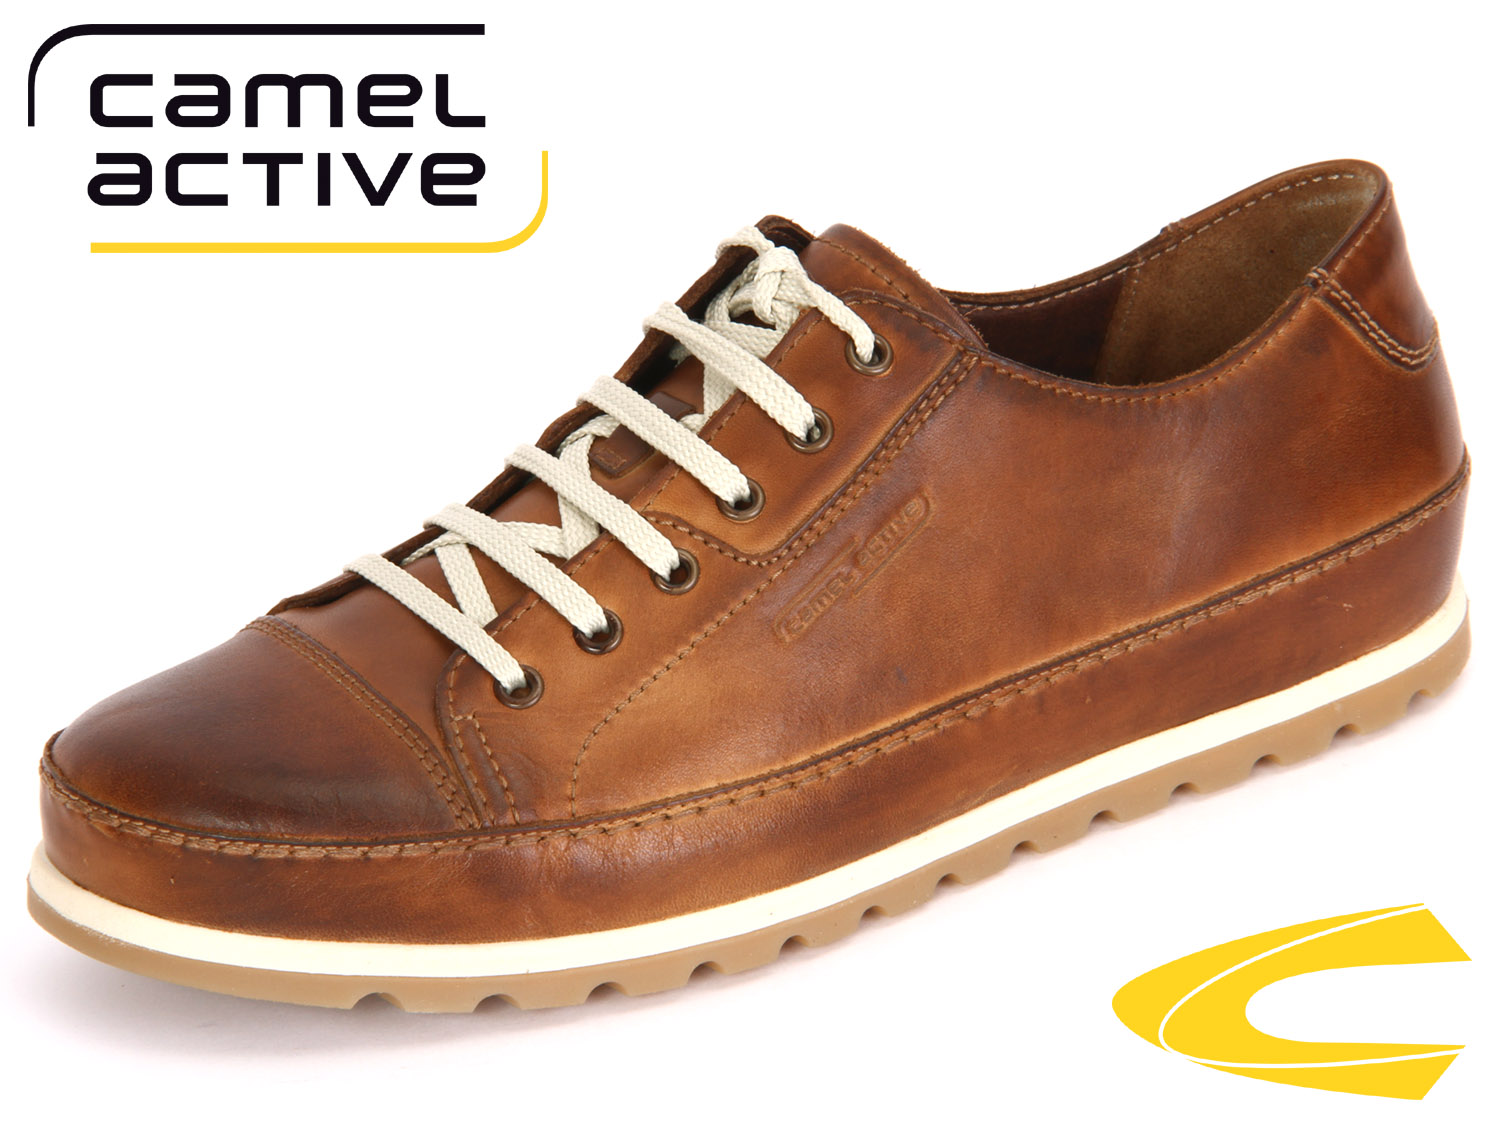 online store c48e5 e69ef camel active Point 452.11.07 brandy Diped Leather